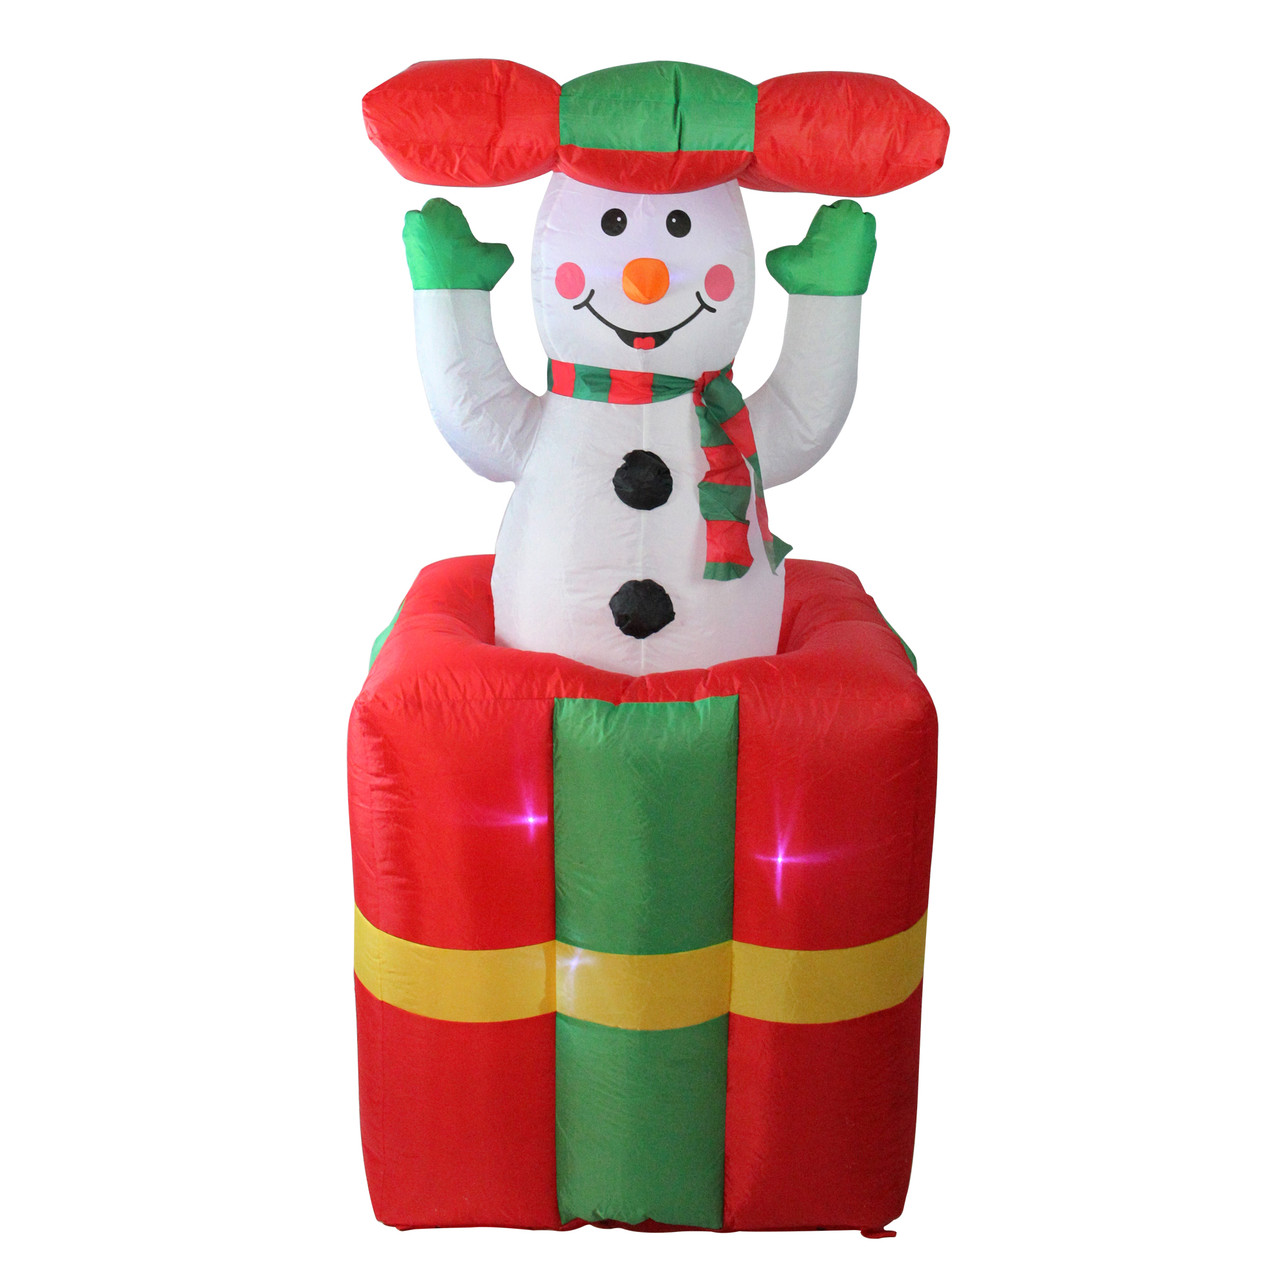 5 lighted inflatable pop up snowman in gift box christmas outdoor decoration 32634956 - Inflatable Christmas